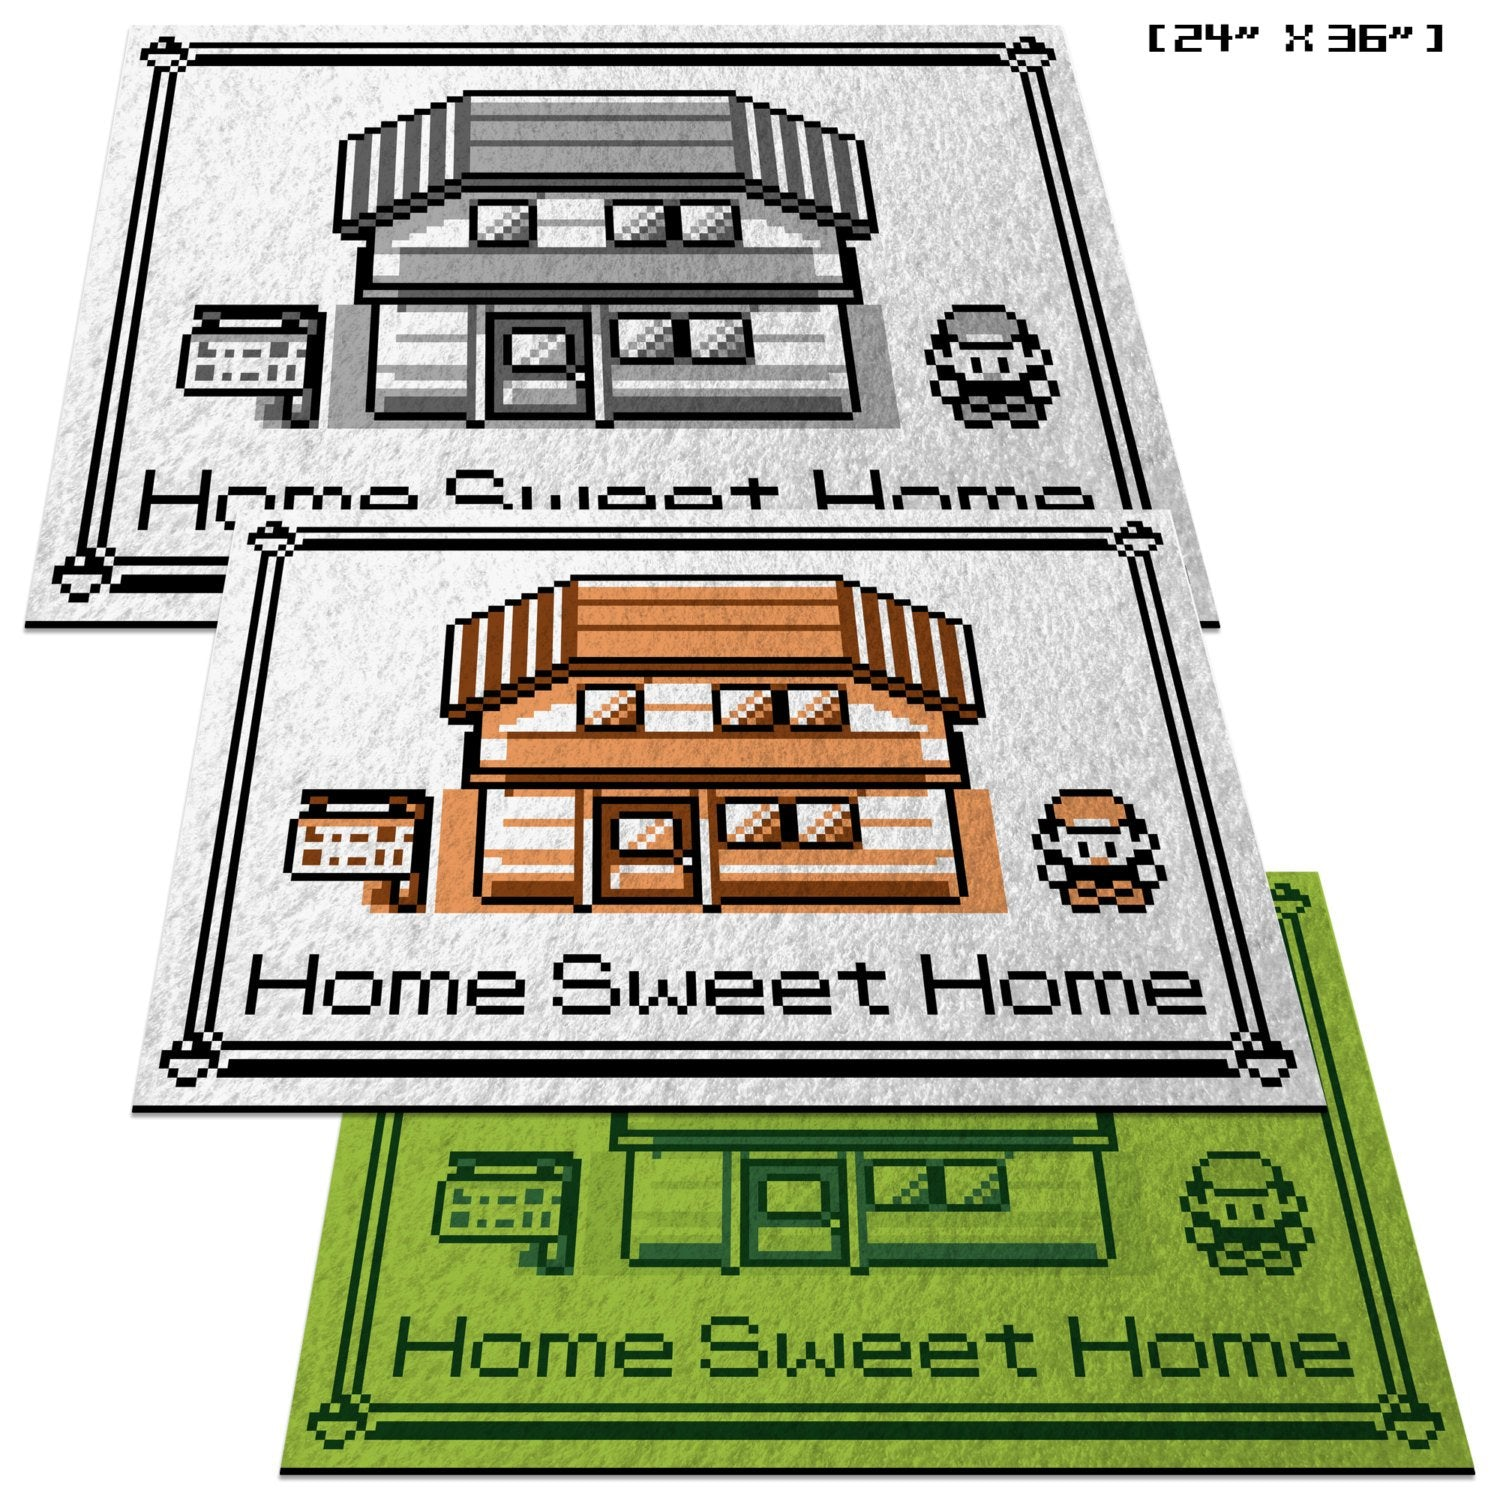 "Pokemon,""Home Sweet Home"" - 24"" x 36"" Doormat Welcome Floormat"